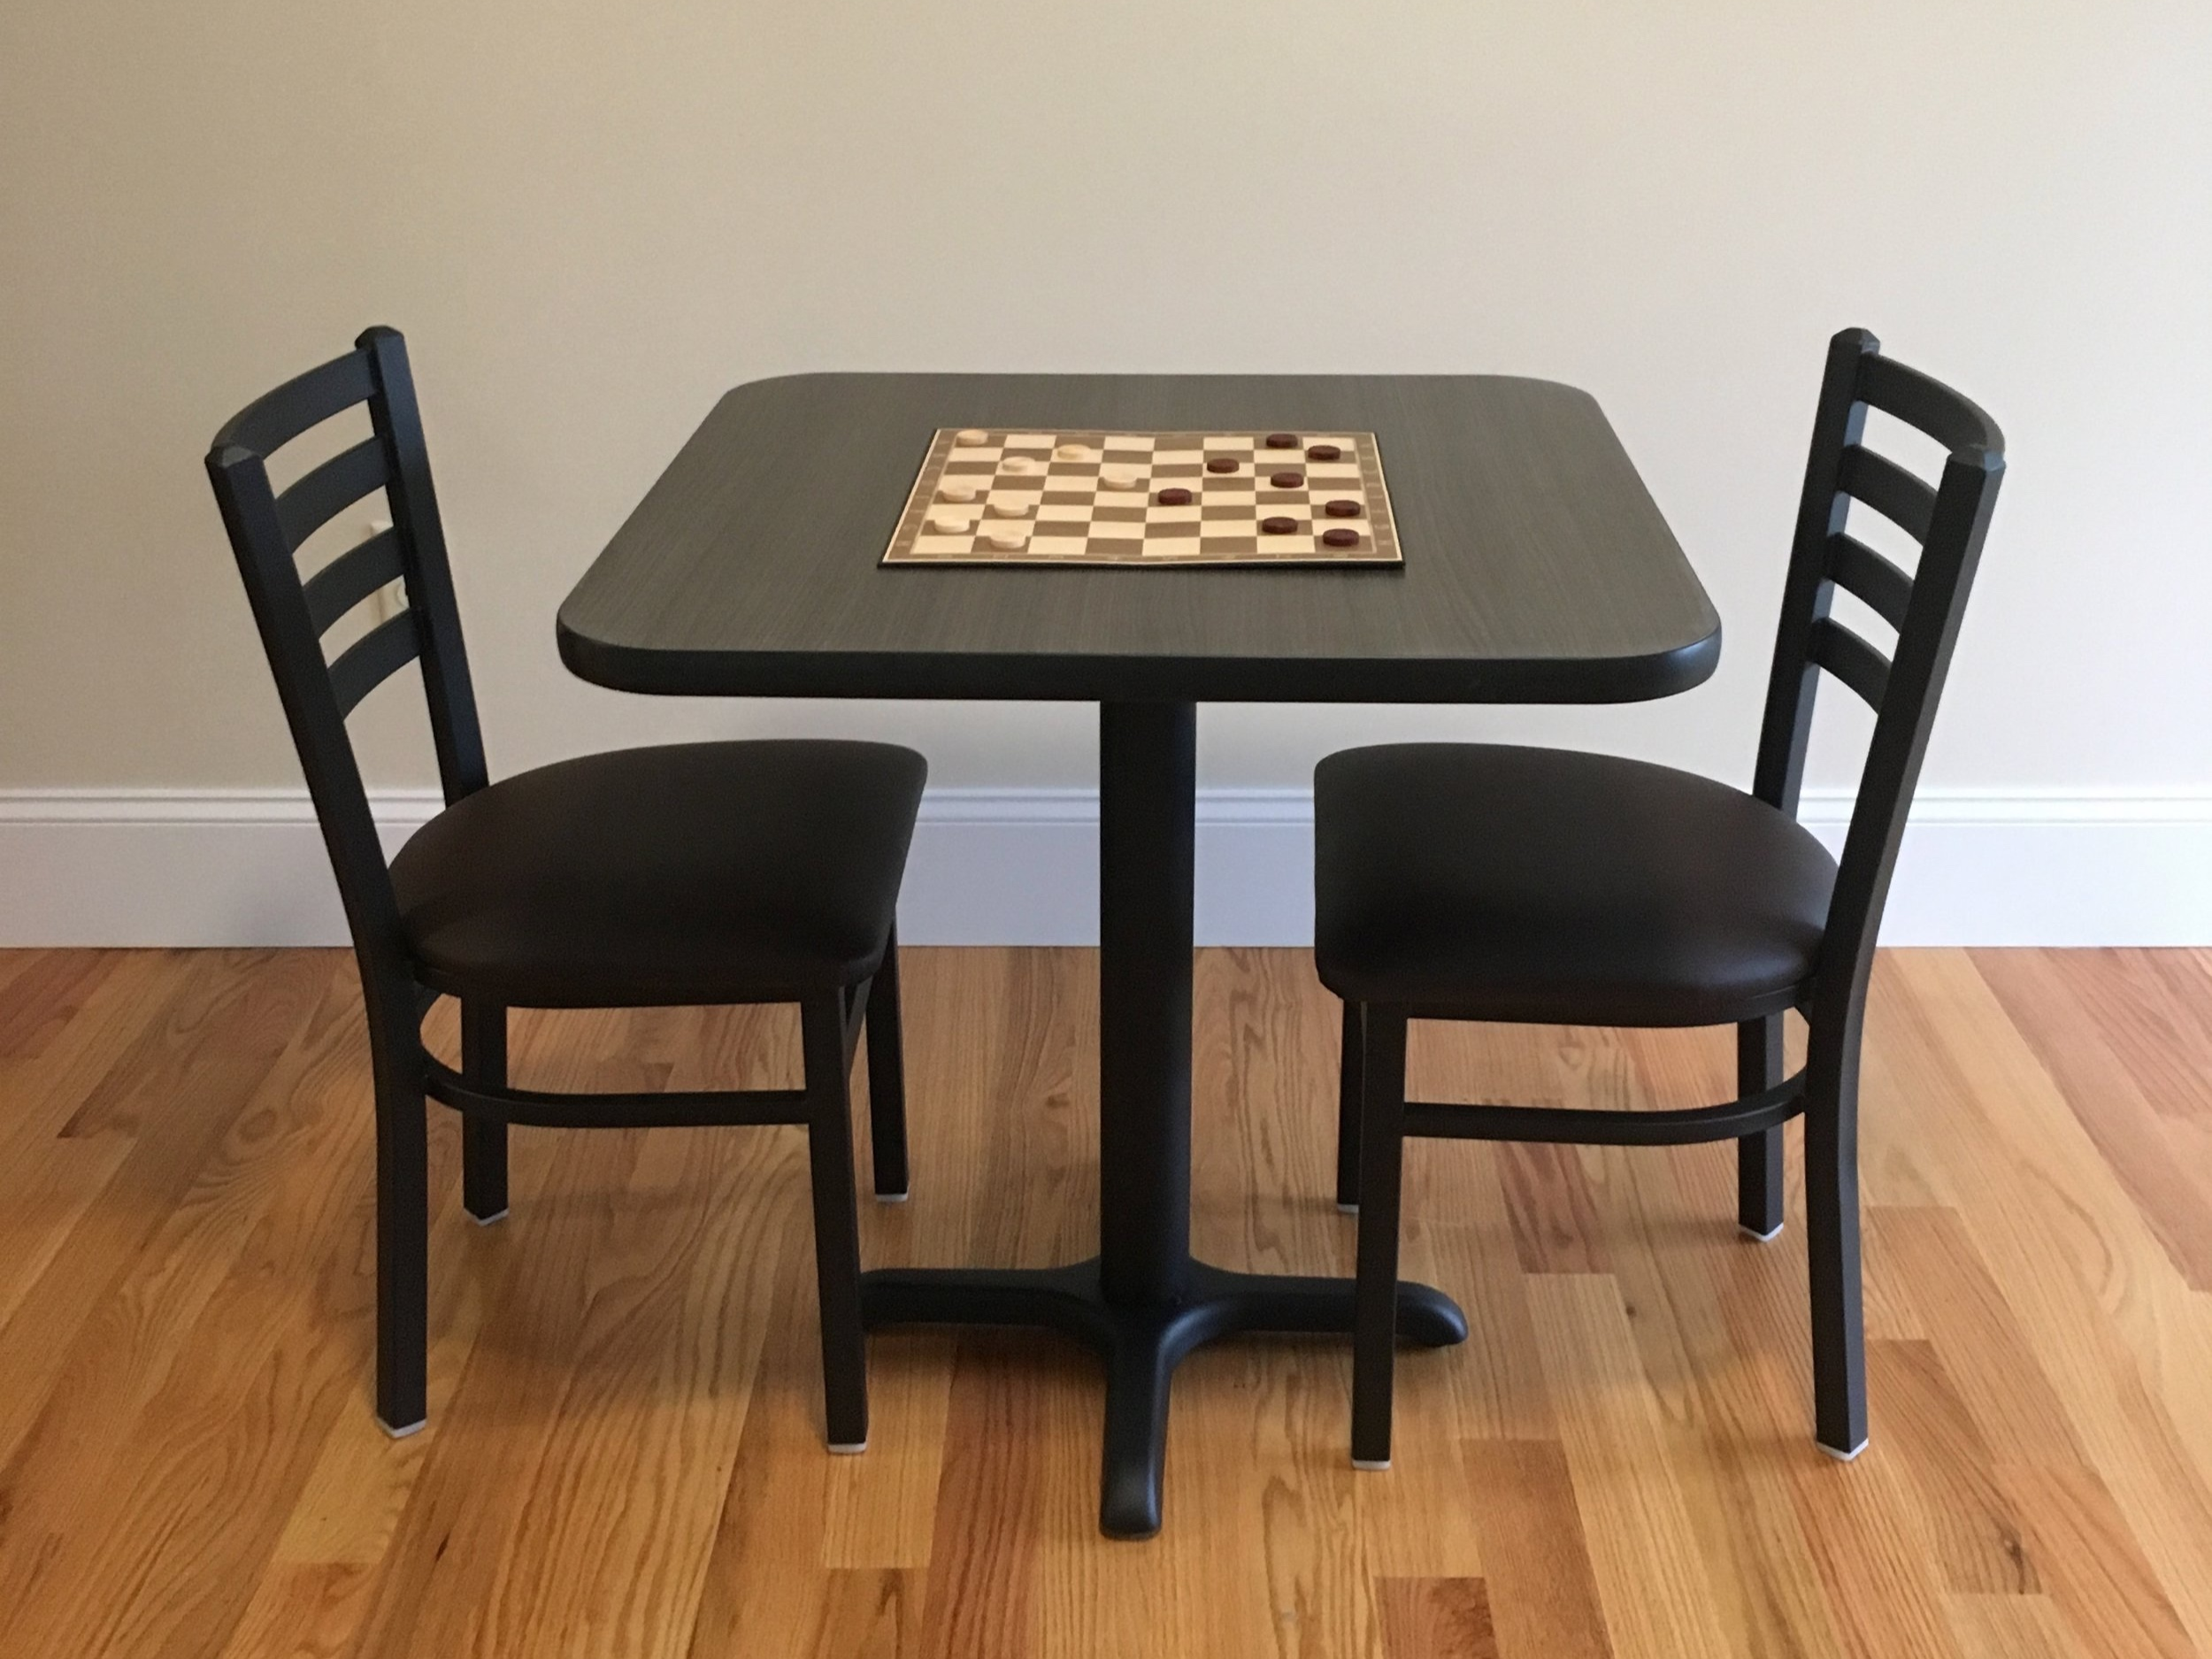 Tuffy+Chairs+with+Laminate+Top+Table.jpg